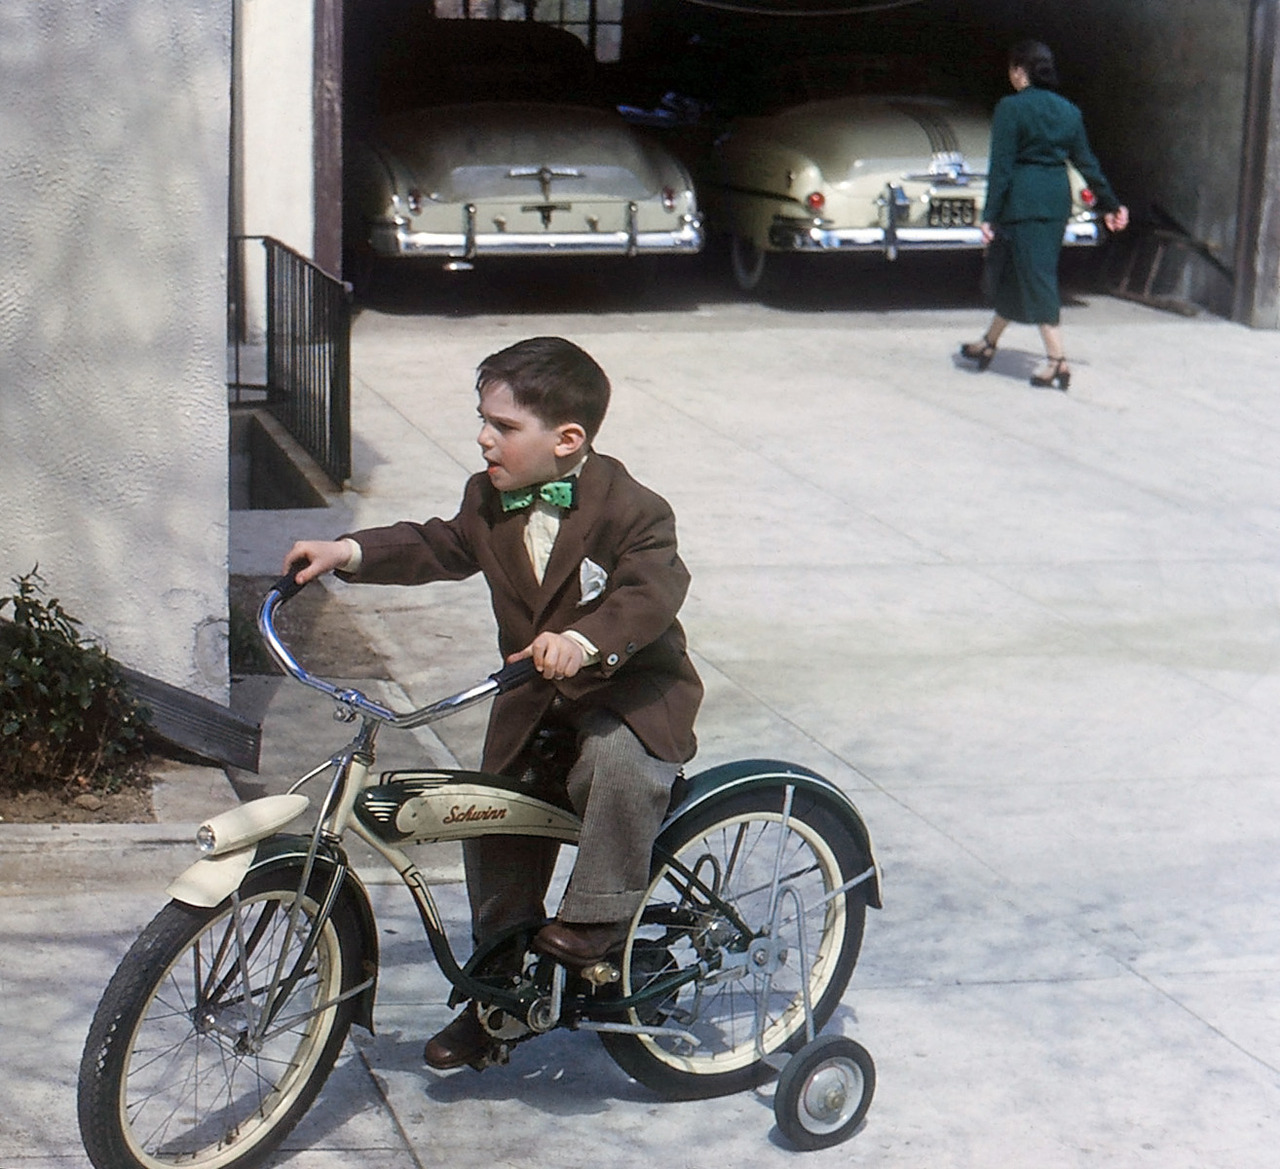 A Schwinn bike and its garage-mates, c. 1949 via Shorpy